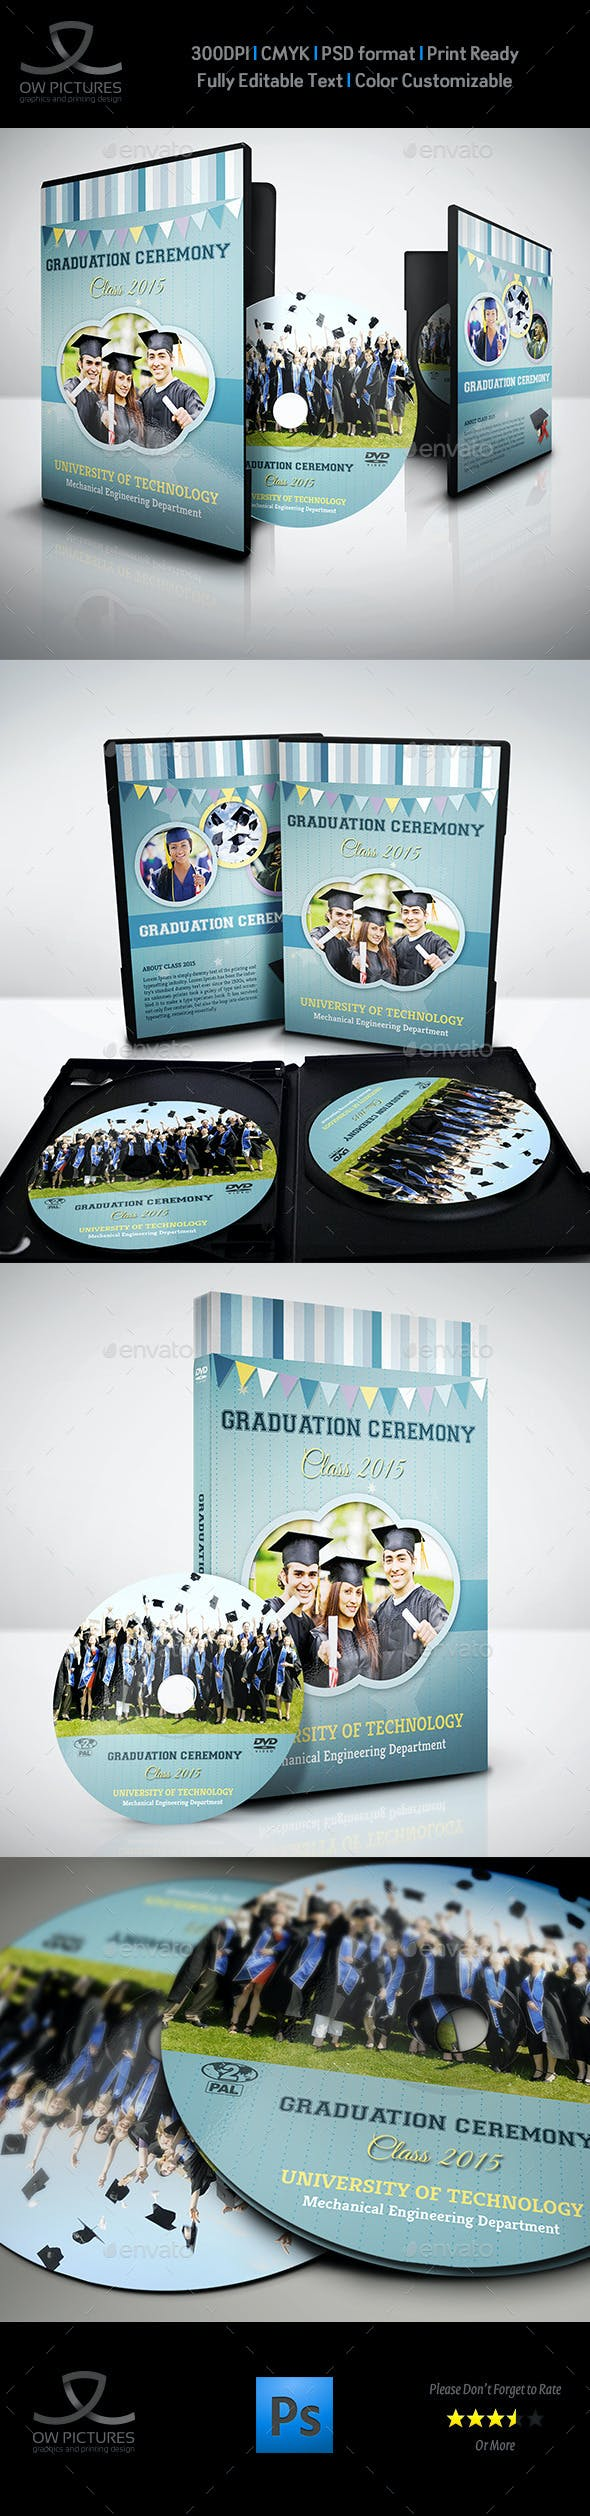 graduation ceremony dvd cover and label template by owpictures